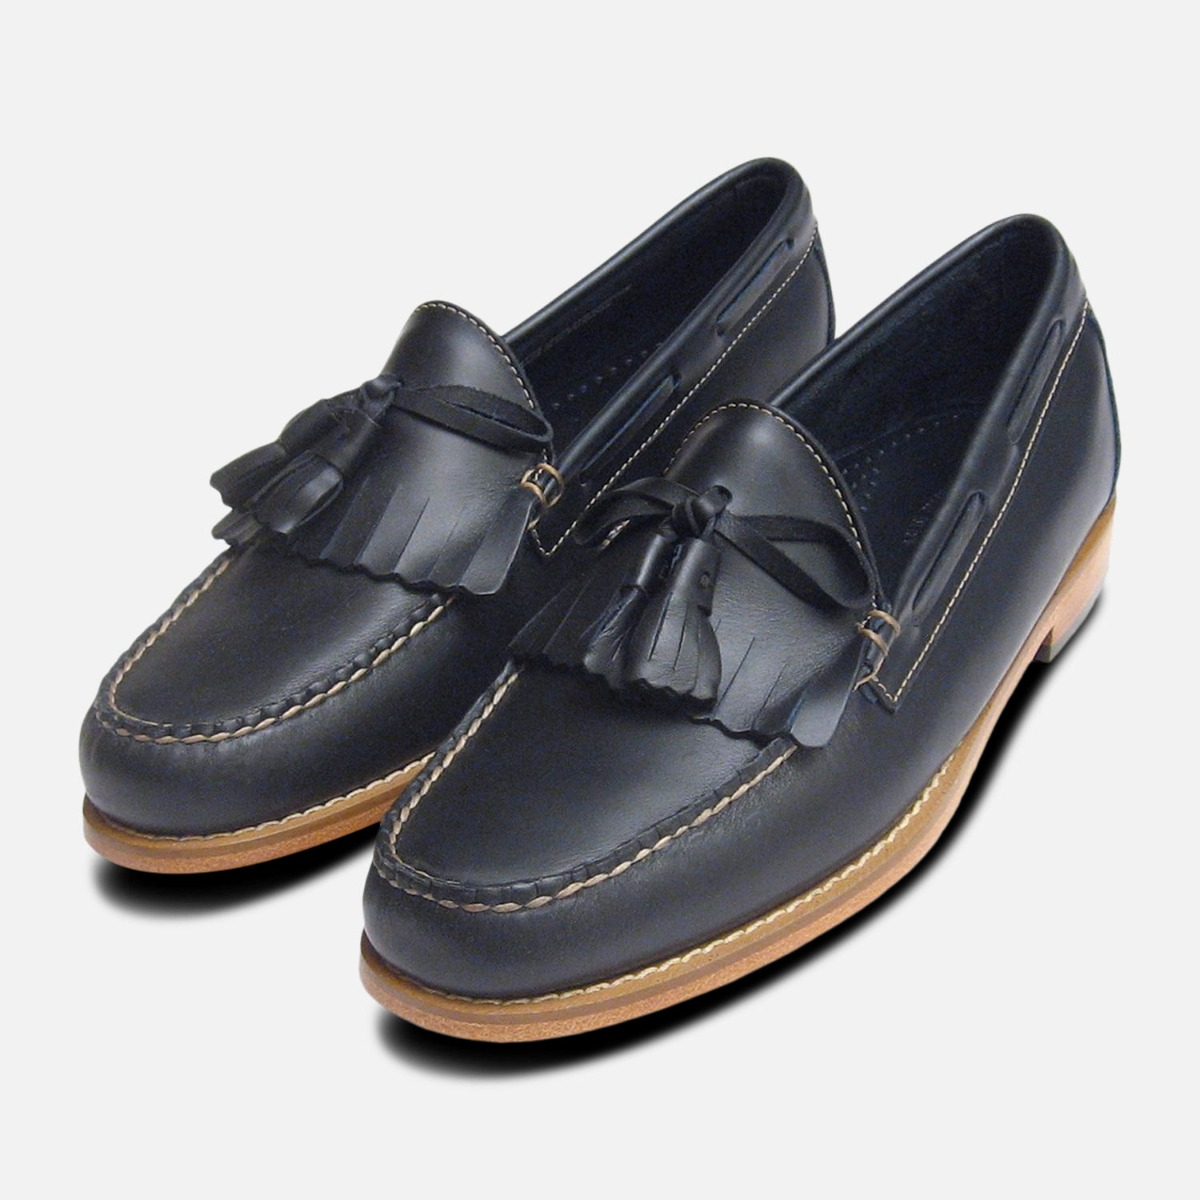 Details about Navy Blue Waxy Leather Mens Fringe   Tassel Loafers by Bass  Weejuns 769270df2